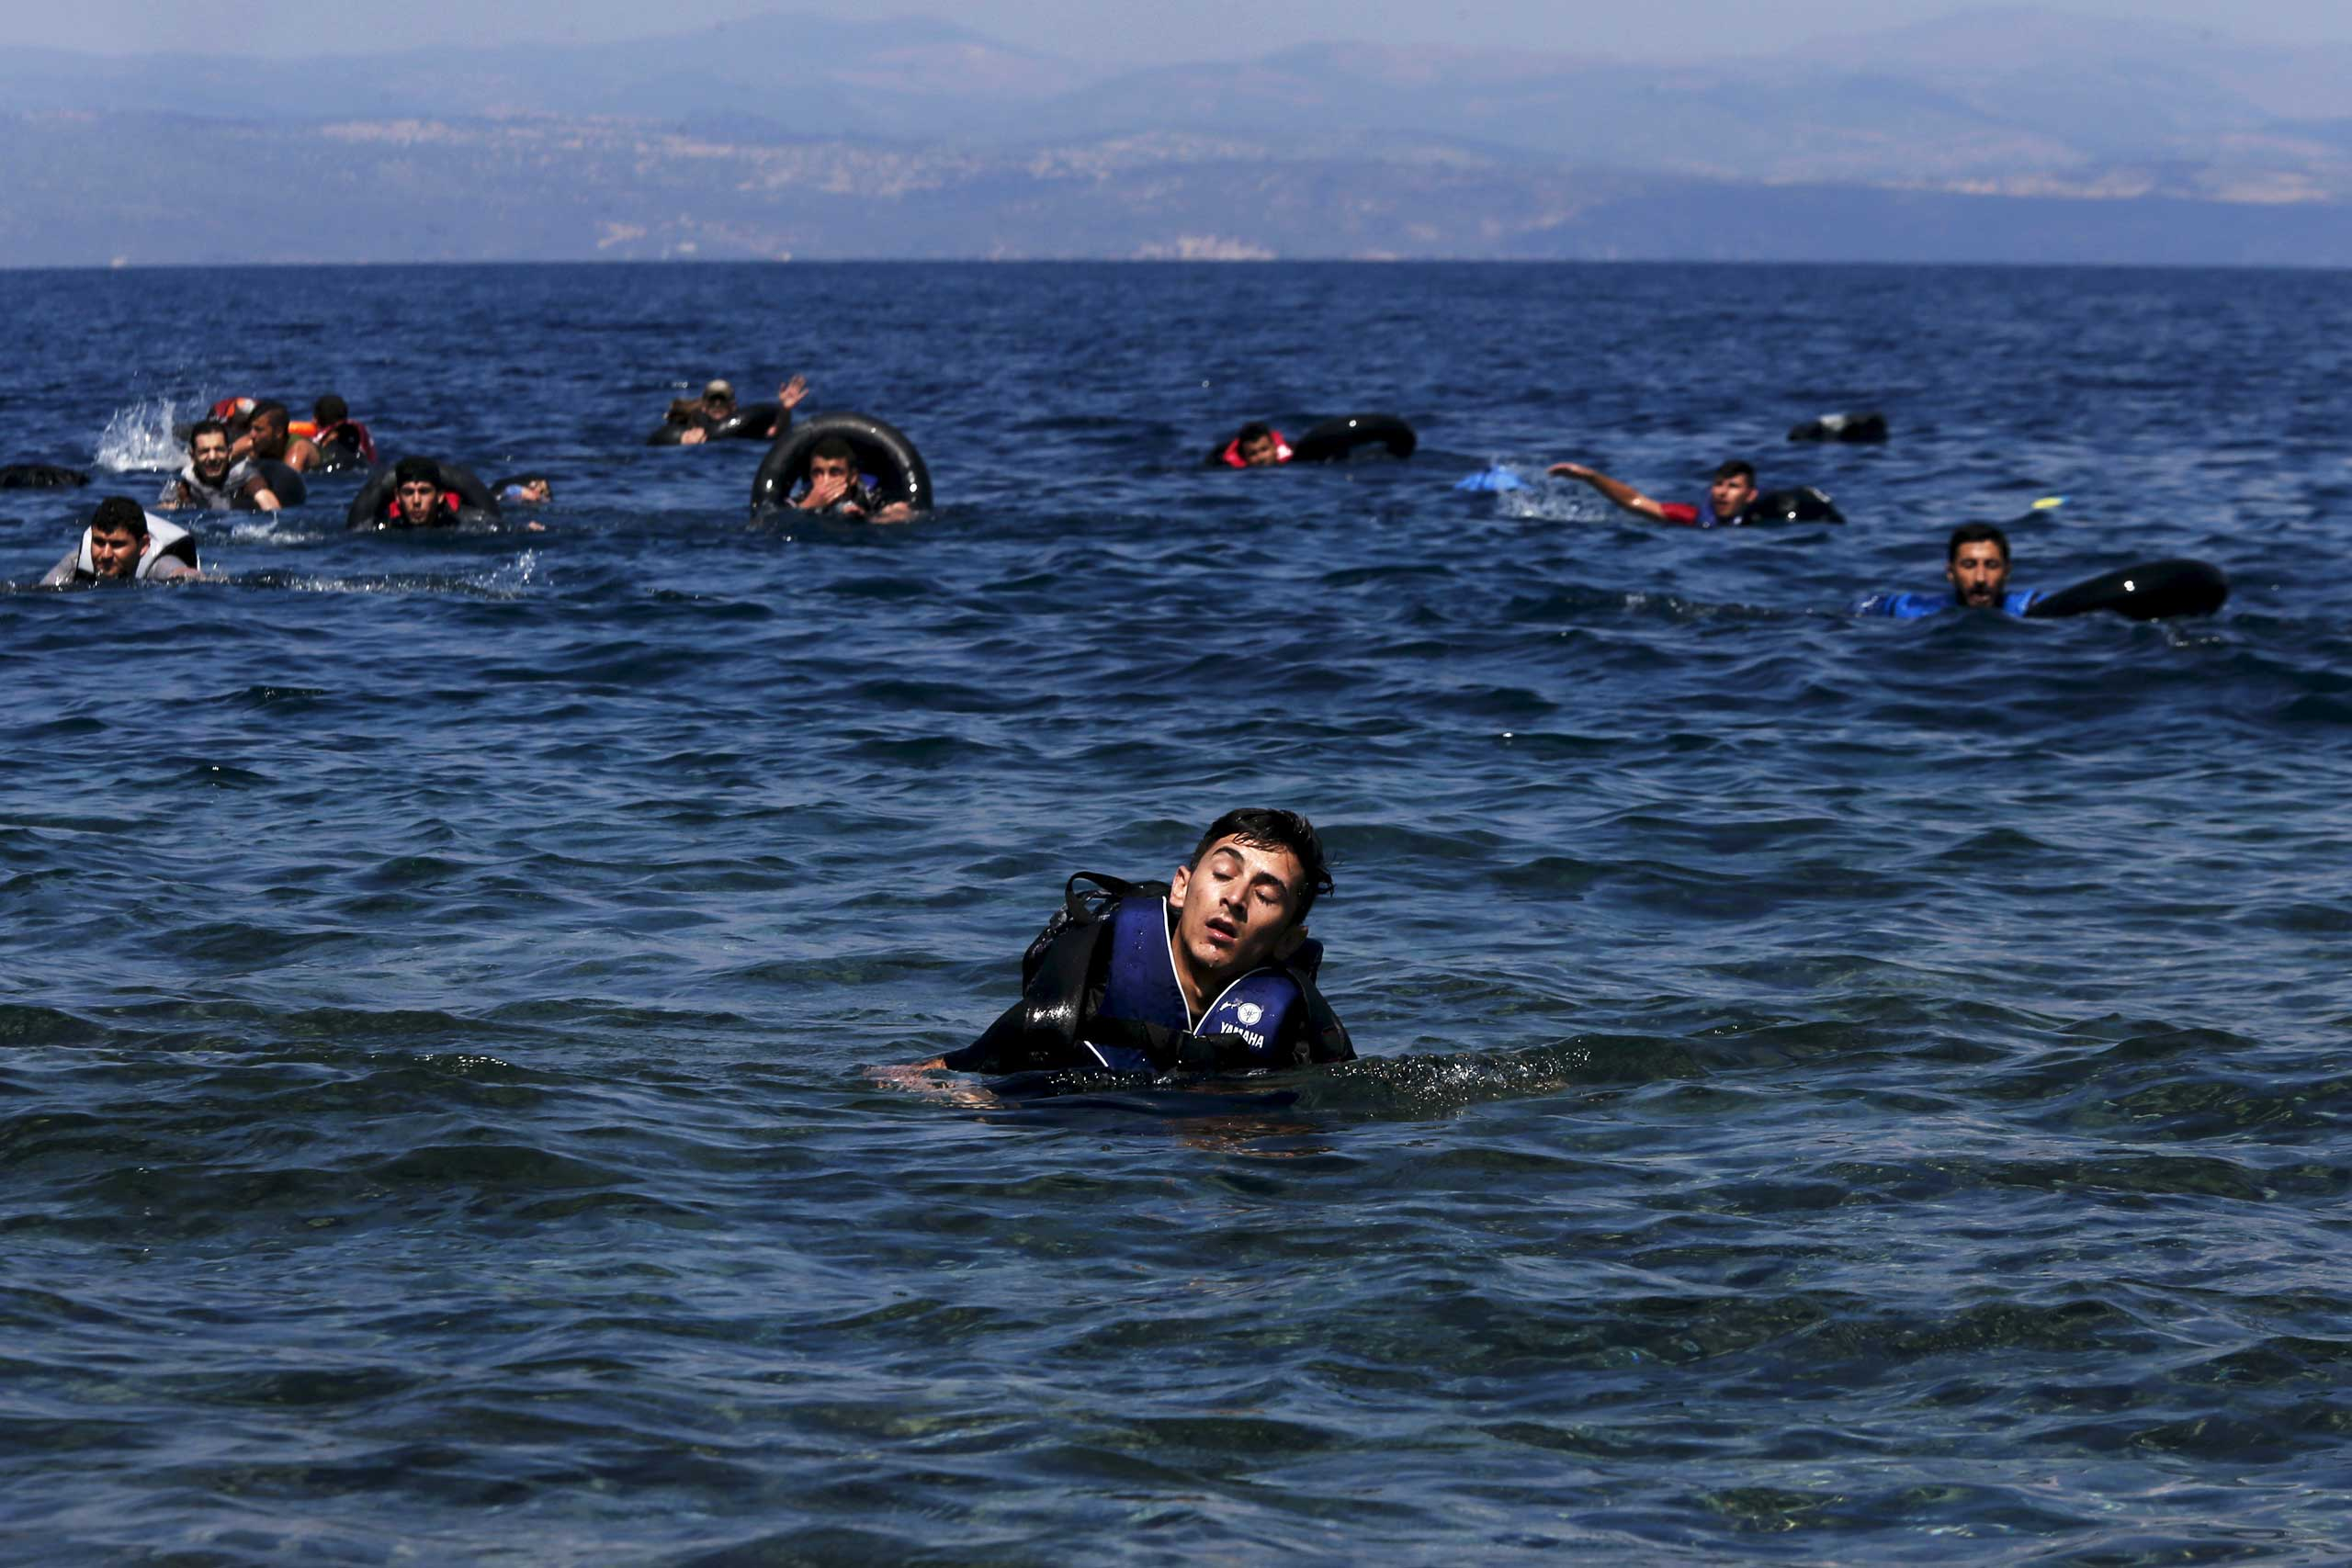 A refugee reacts from exhaustion while swimming towards the shore after a dinghy carrying Syrian and Afghan refugees before reaching the Greek island of Lesbos, on Sept. 13, 2015.